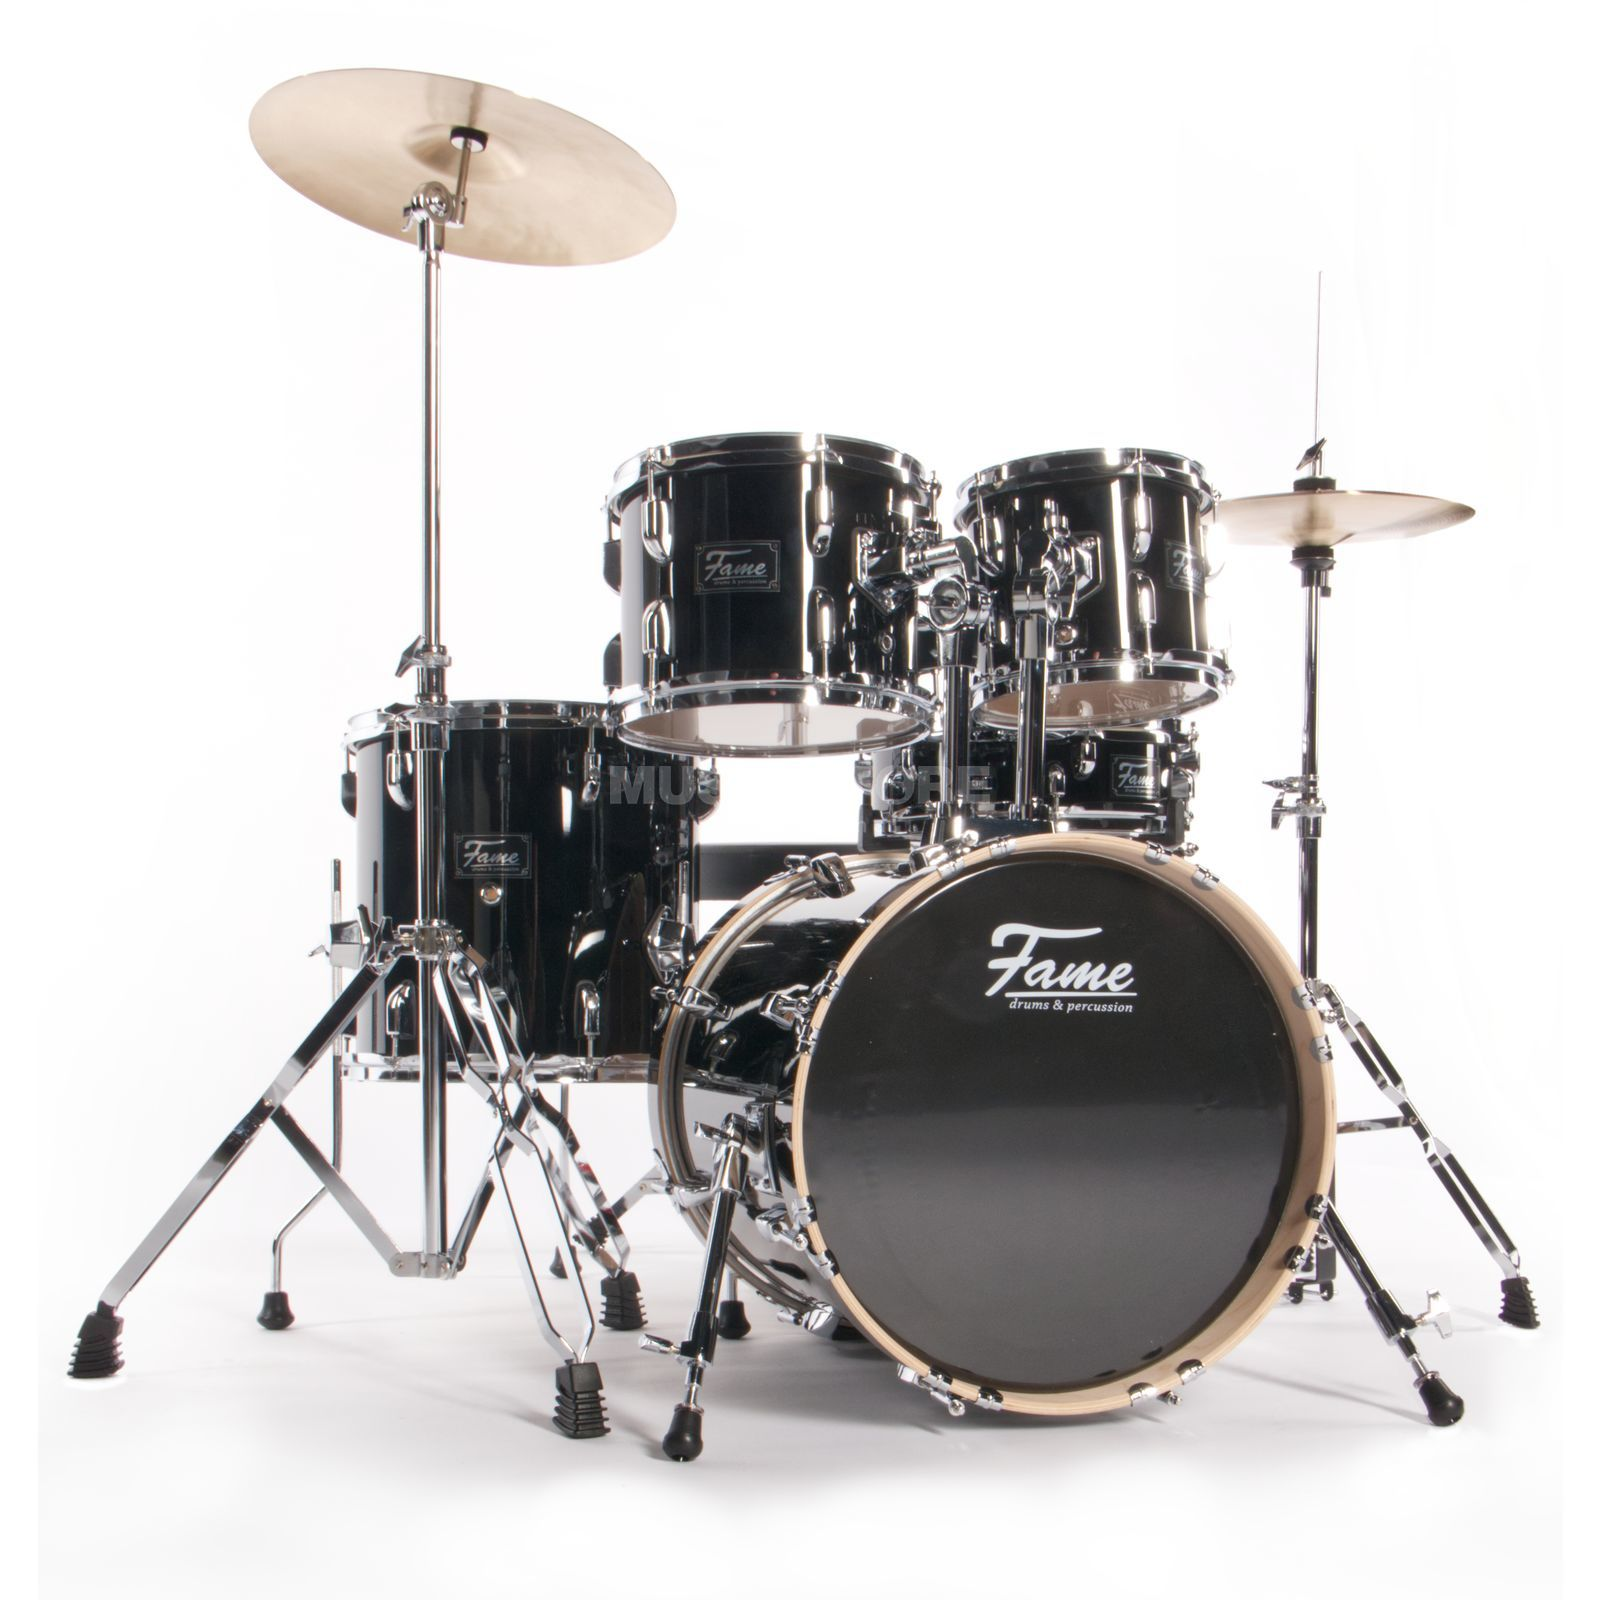 Fame Maple Standard Jungle Set, #Black Produktbild